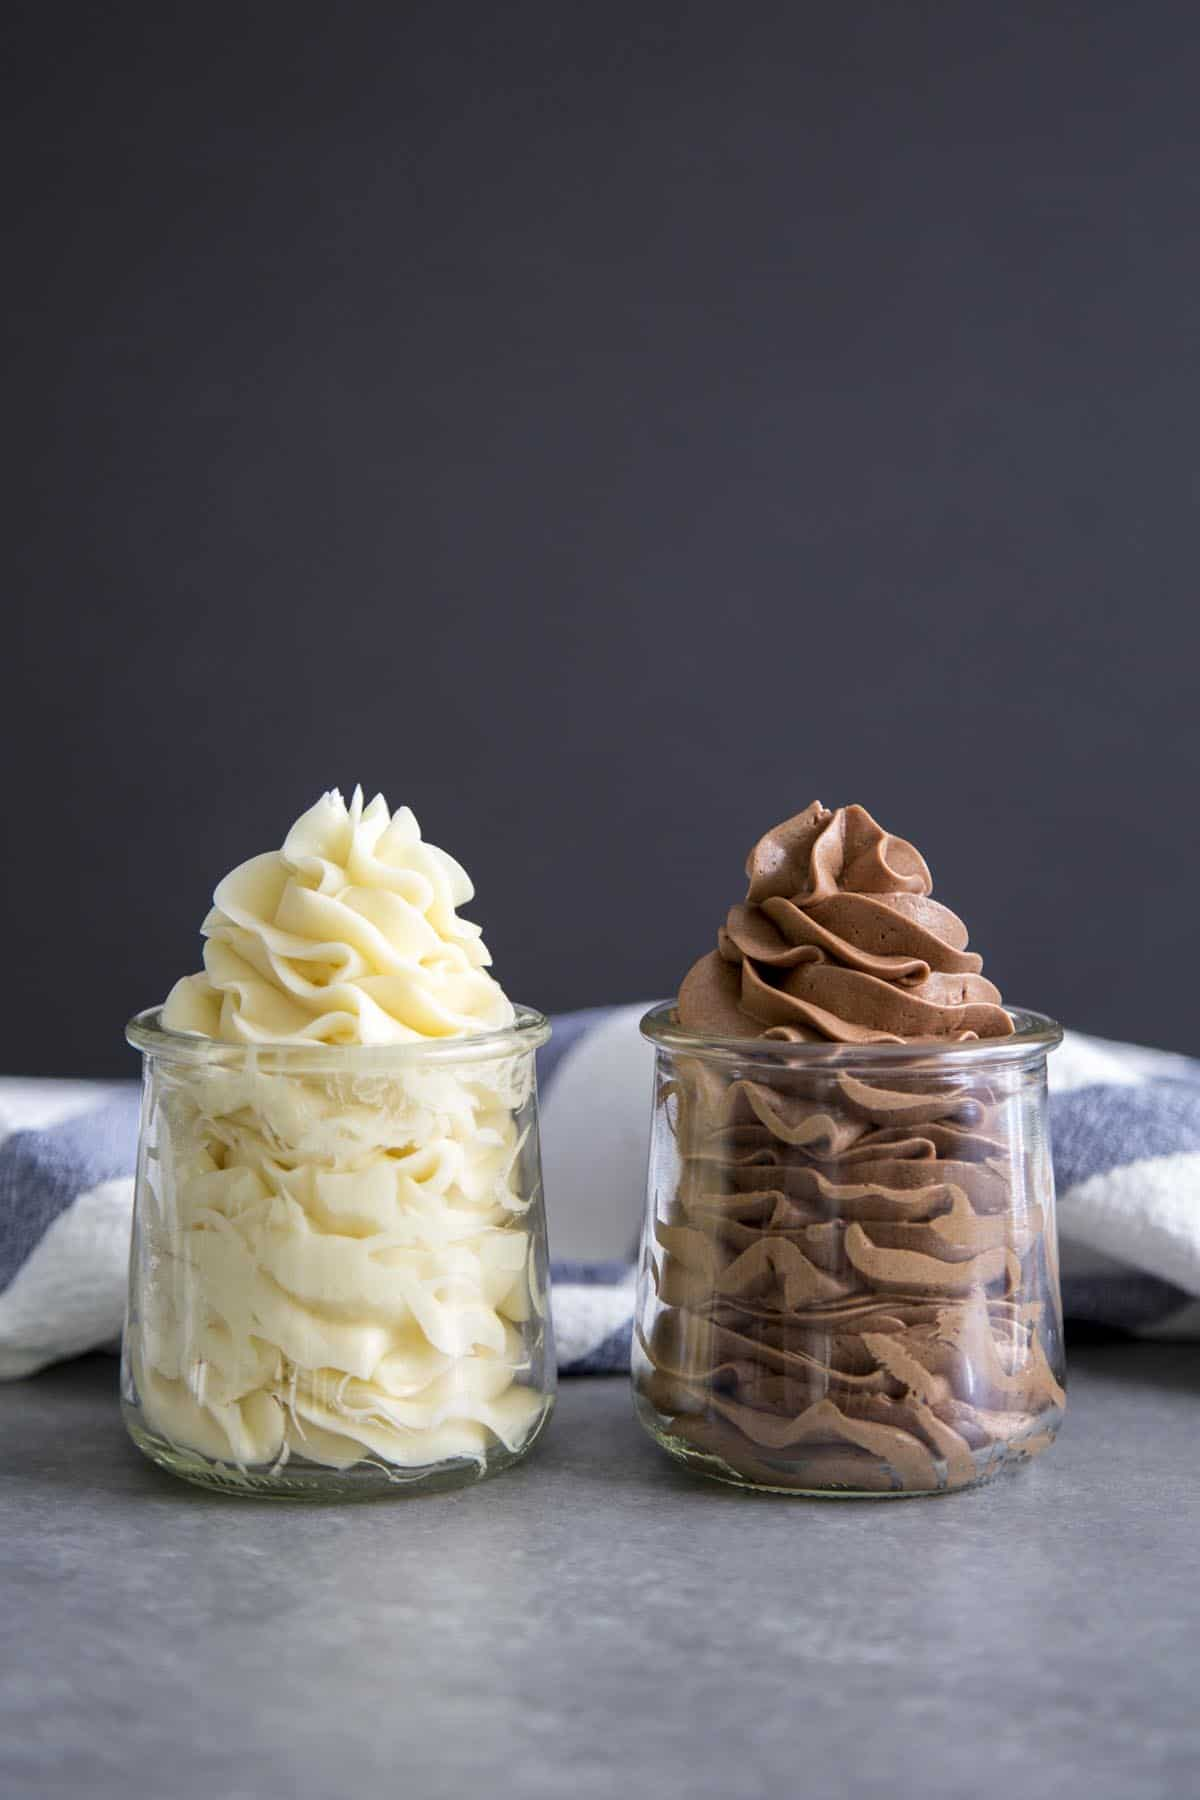 Chocolate and vanilla swiss buttercream in clear jars